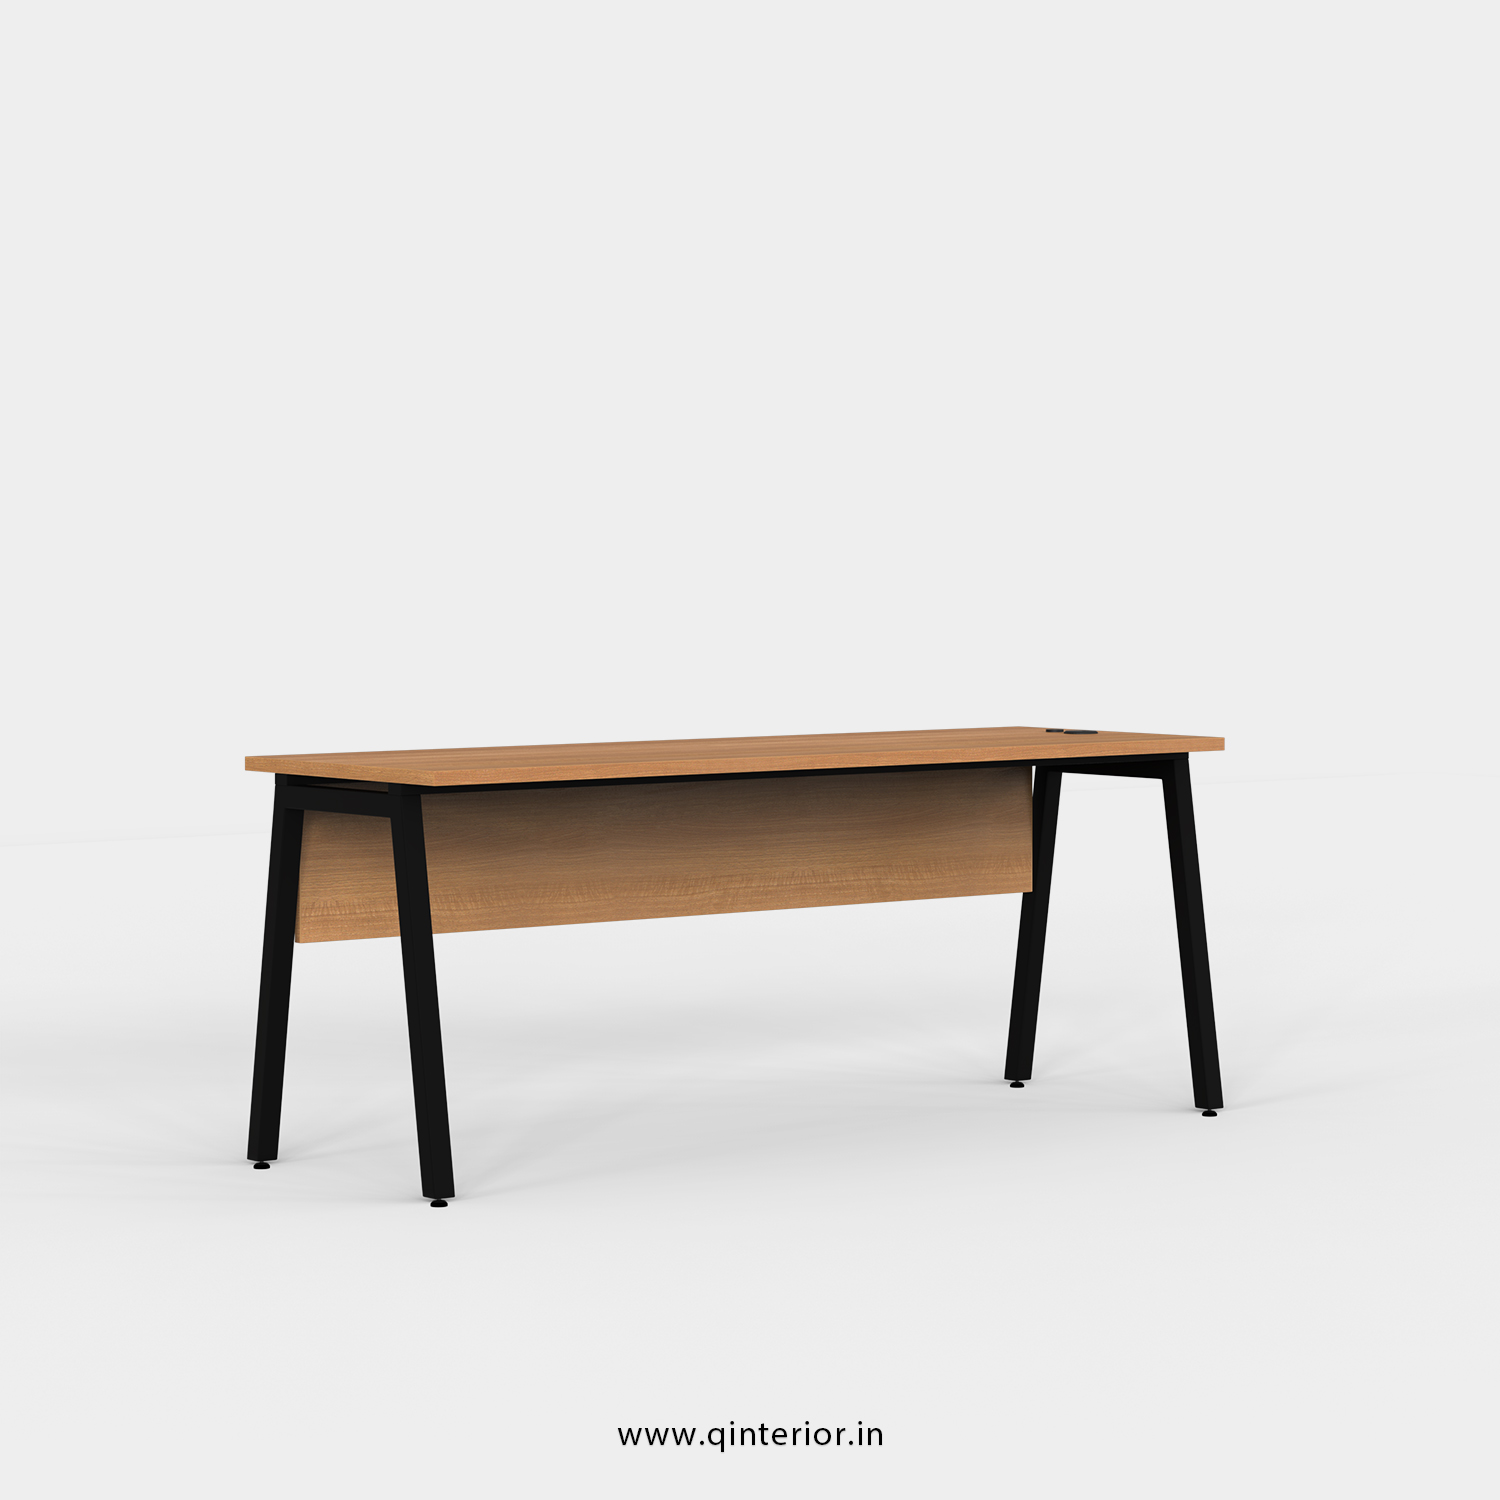 Berg Executive Table in Oak Finish - OET001 C2